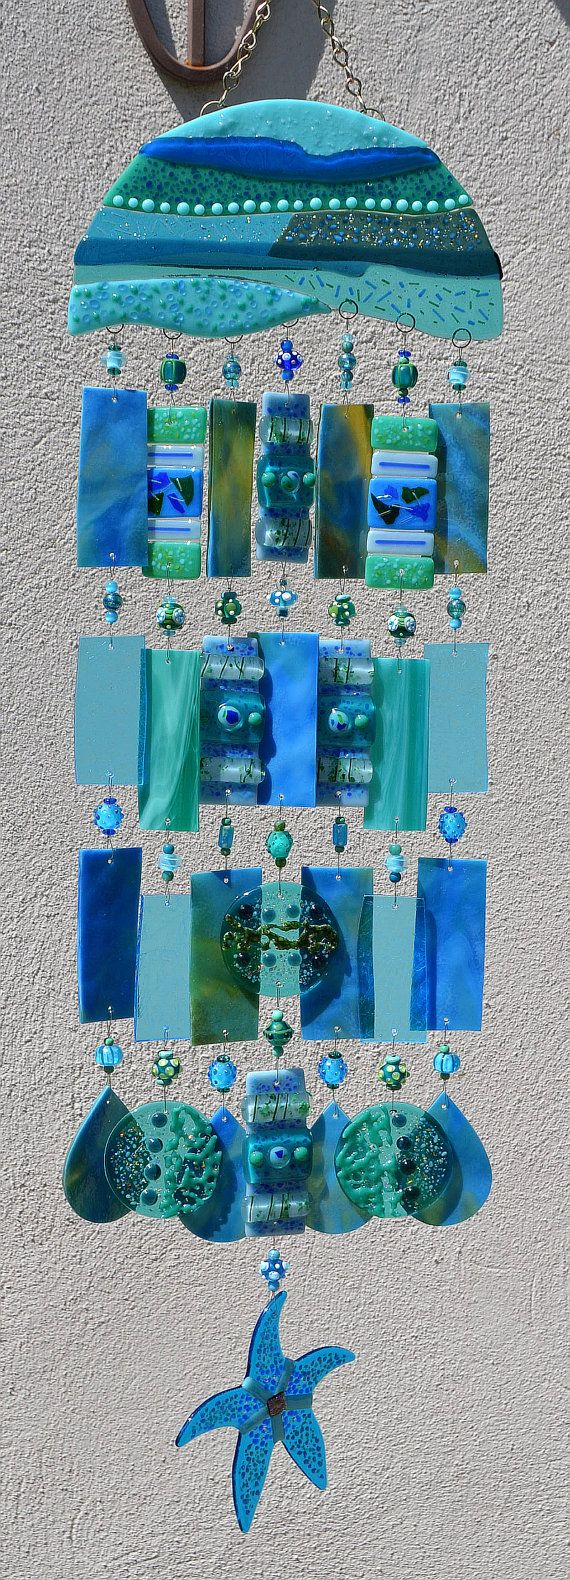 Kirks Glass Art Fused Stained Glass Wind Chime windchimes